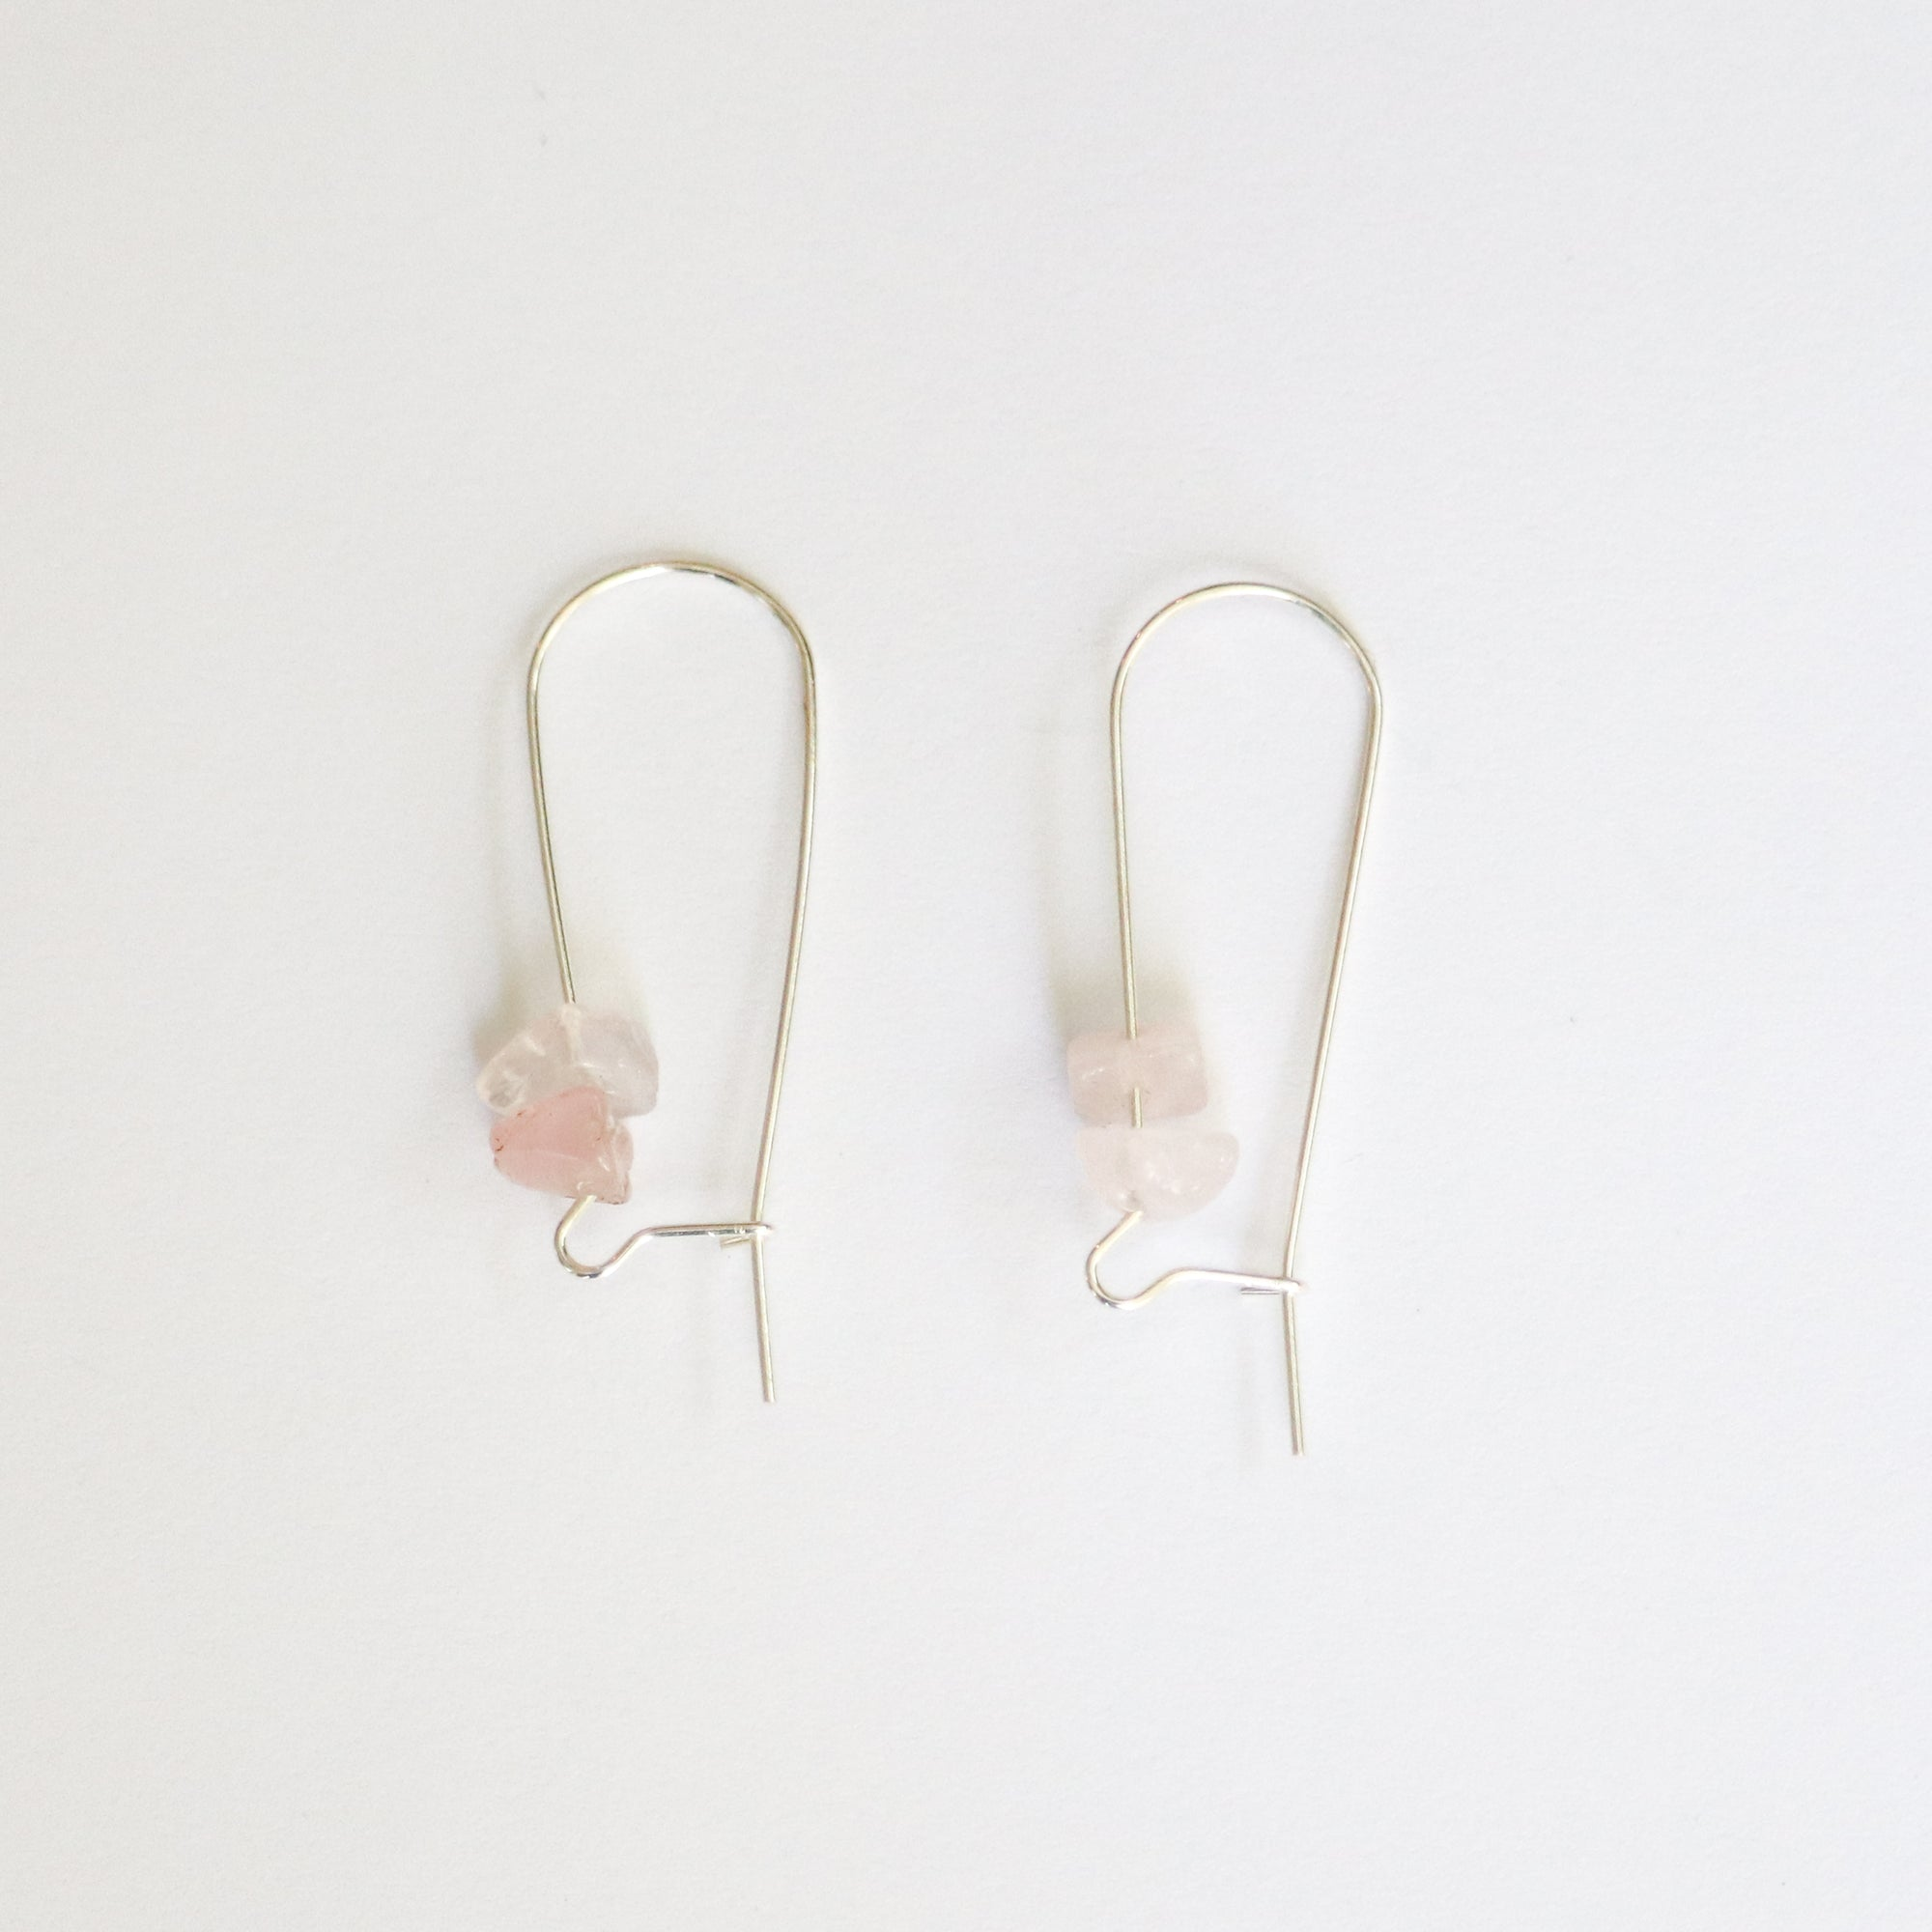 Rose Quartz Sterling Silver Hoop Earrings